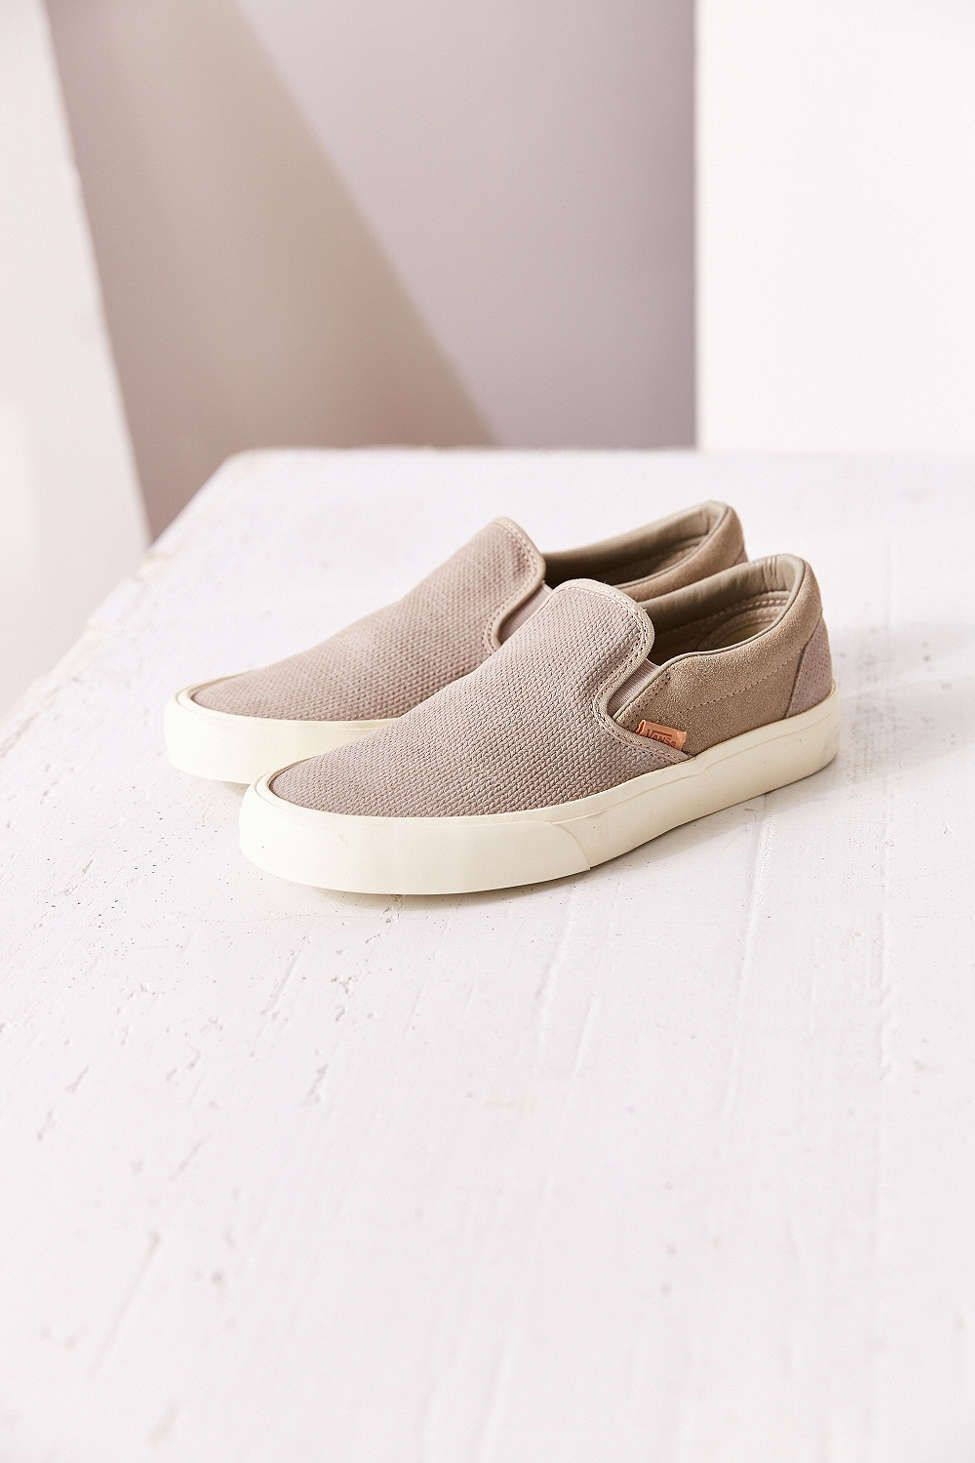 030bc677545 Vans Classic Knit Suede Slip-On Women s Sneaker ...